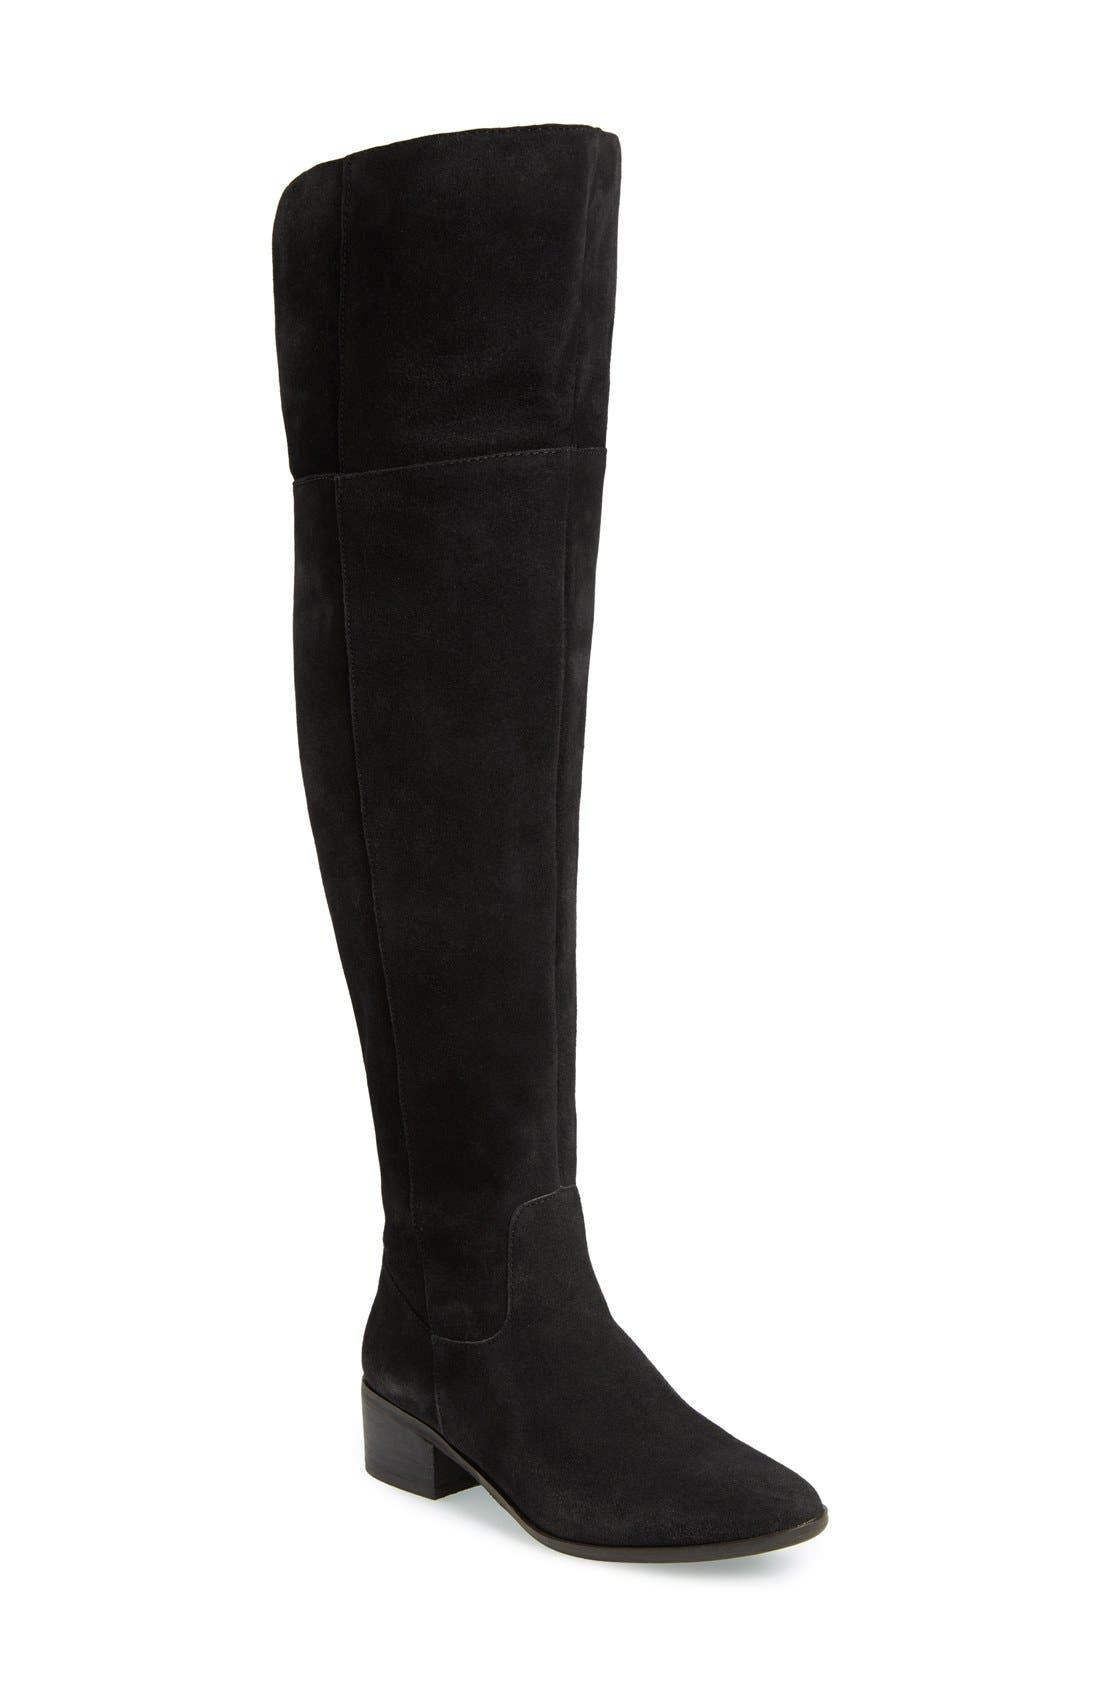 Main Image - Steve Madden Suede Over the Knee Boot (Women)